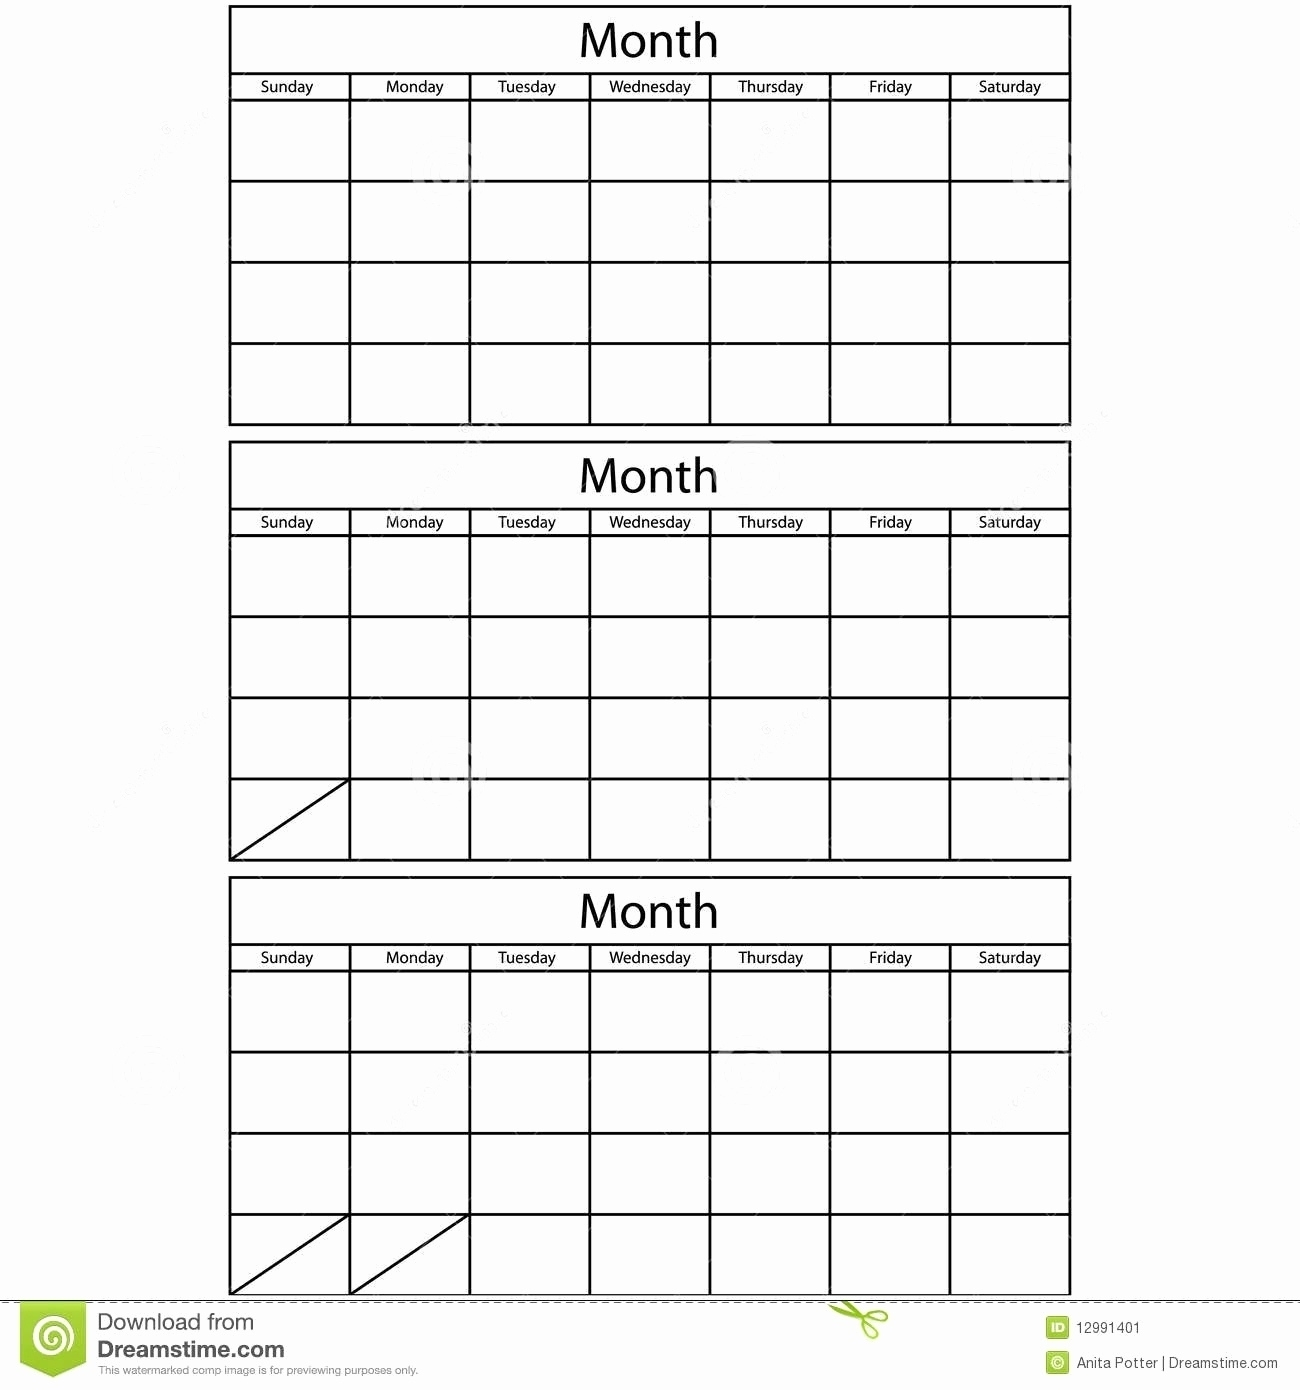 3 Month Planning Calendar Free Printable • Printable Blank Calendar within 3 Month Calendar Free Printable